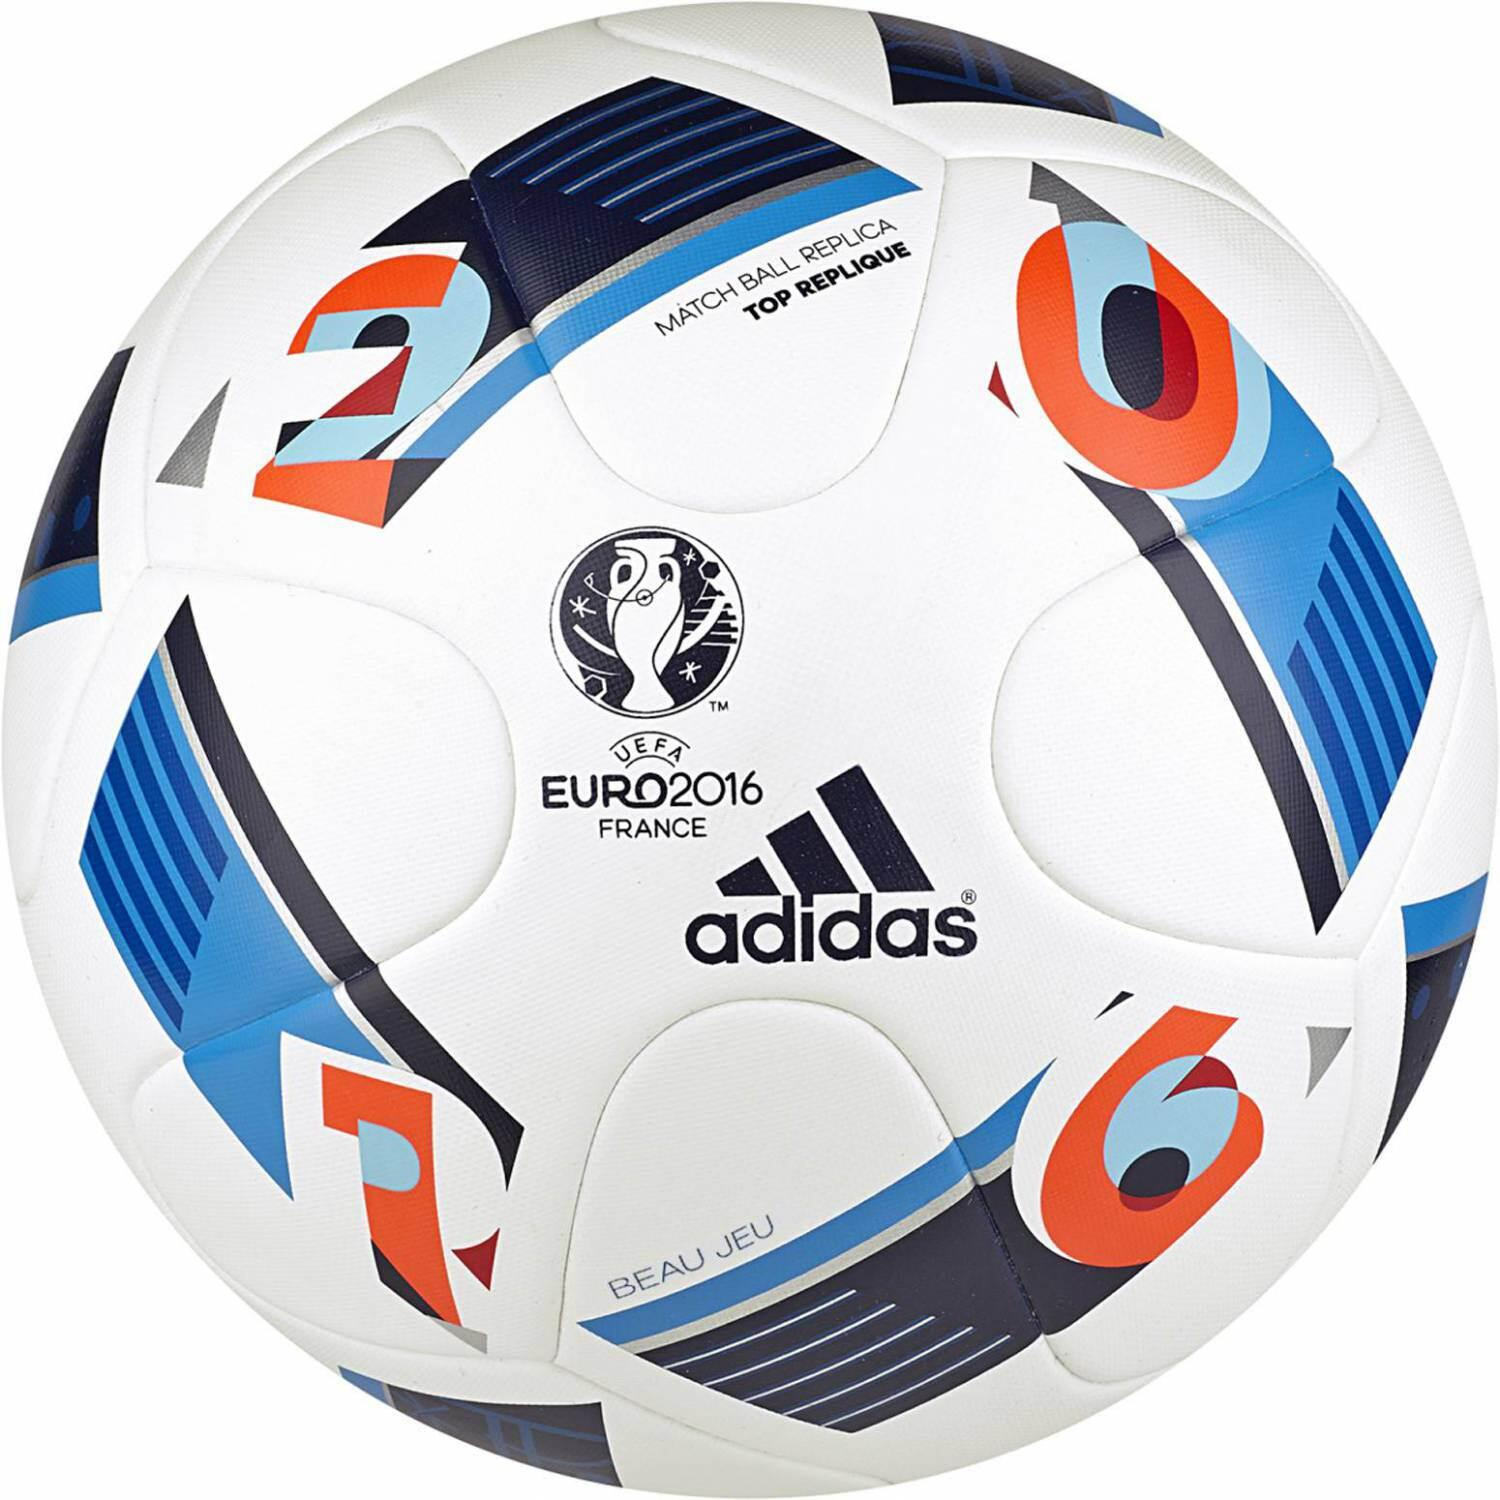 adidas-euro-2016-top-replique-trainingsfu-szlig-ball-gr-ouml-szlig-e-5-white-bright-blue-night-i